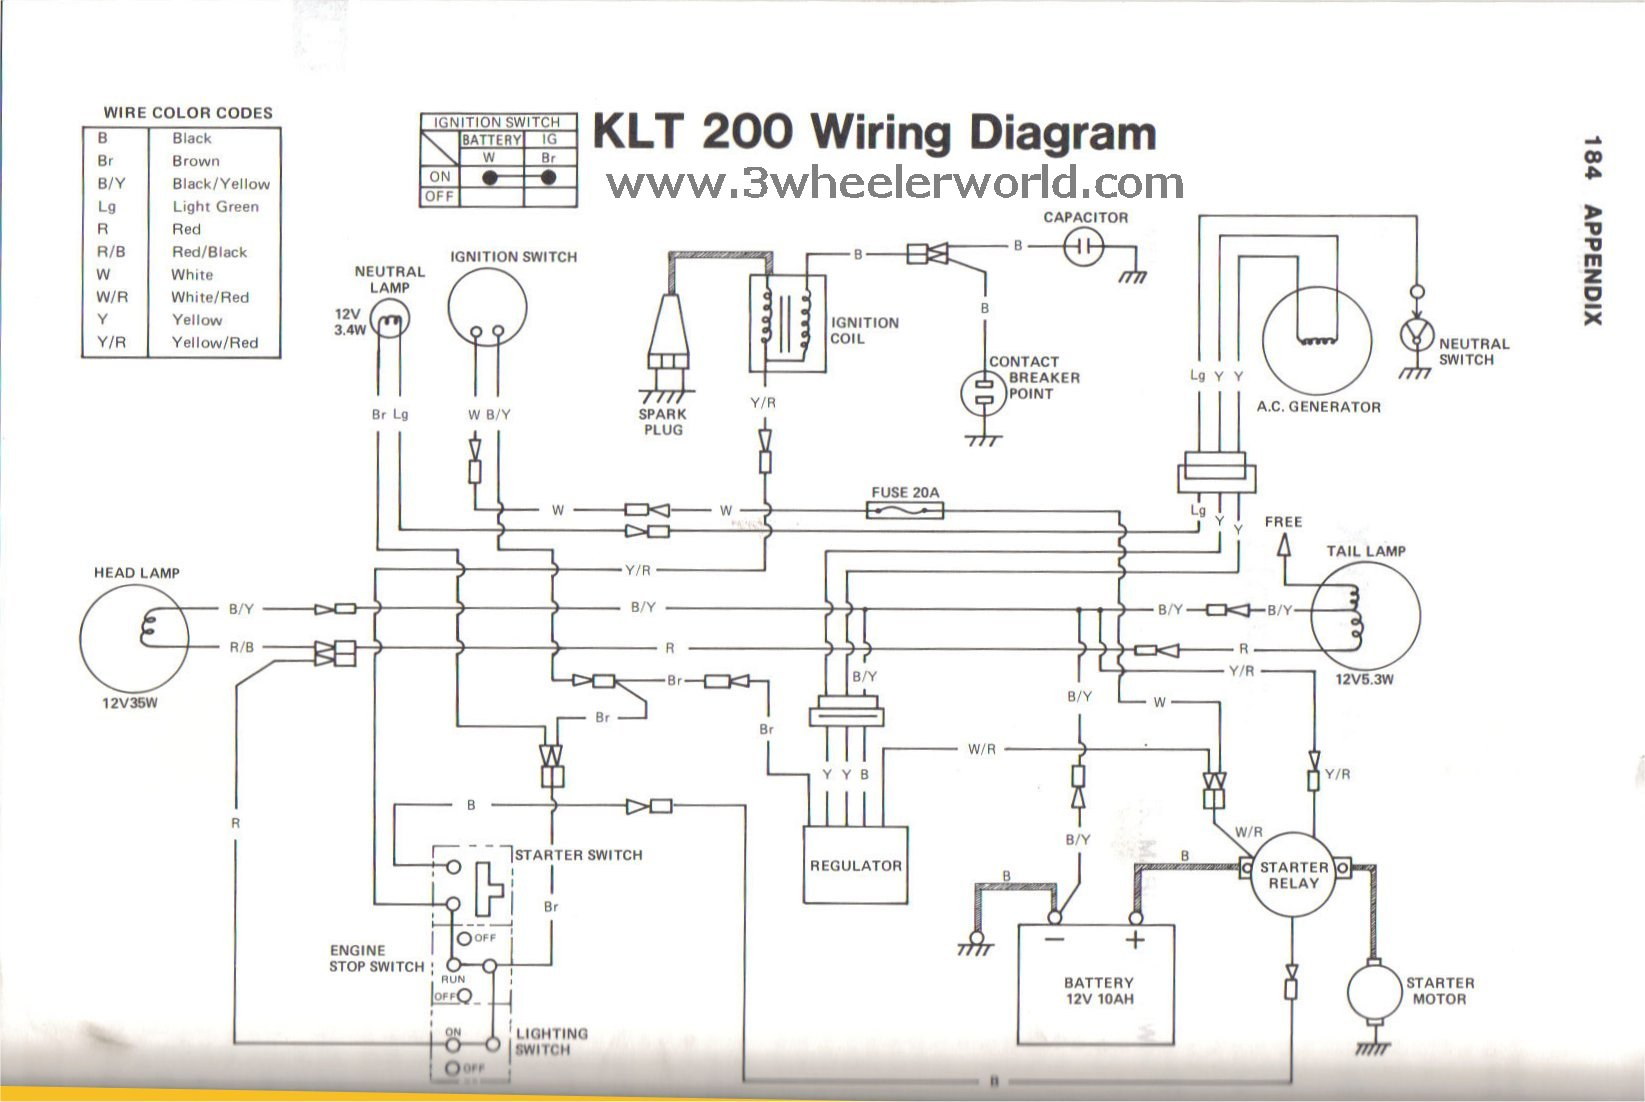 hight resolution of kawasaki 250 mojave 4 wheeler wiring diagram wiring diagrams second kawasaki 250 4 wheeler 2007 wiring diagram